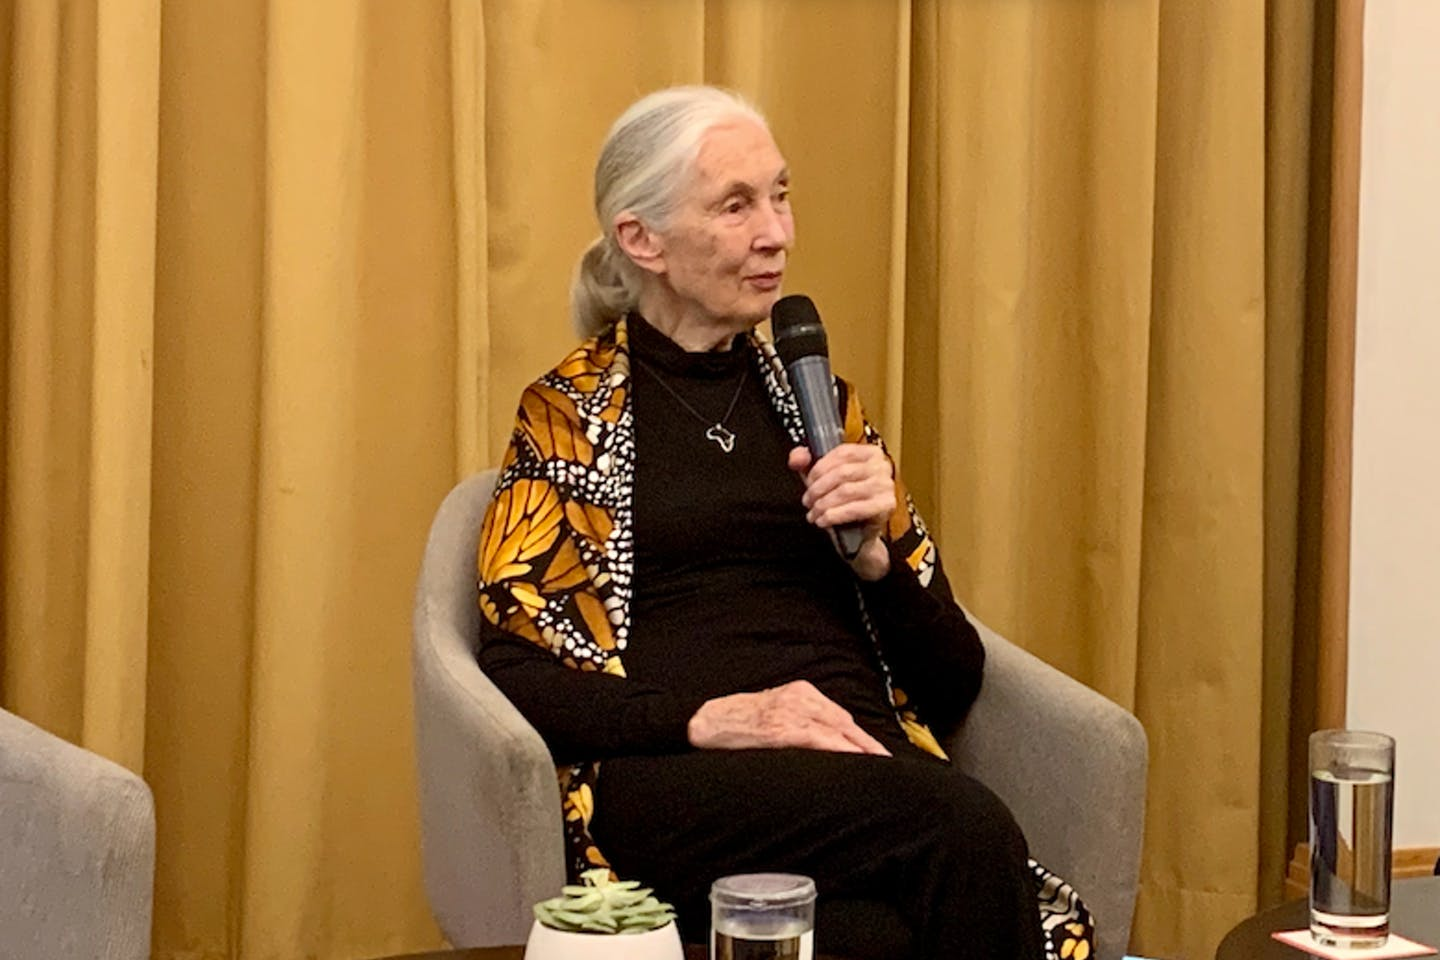 Dr Jane Goodall speaking at a press conference in Singapore. She said complaints from hotel customers would help to phase out shark's fin. Image: Eco-Business